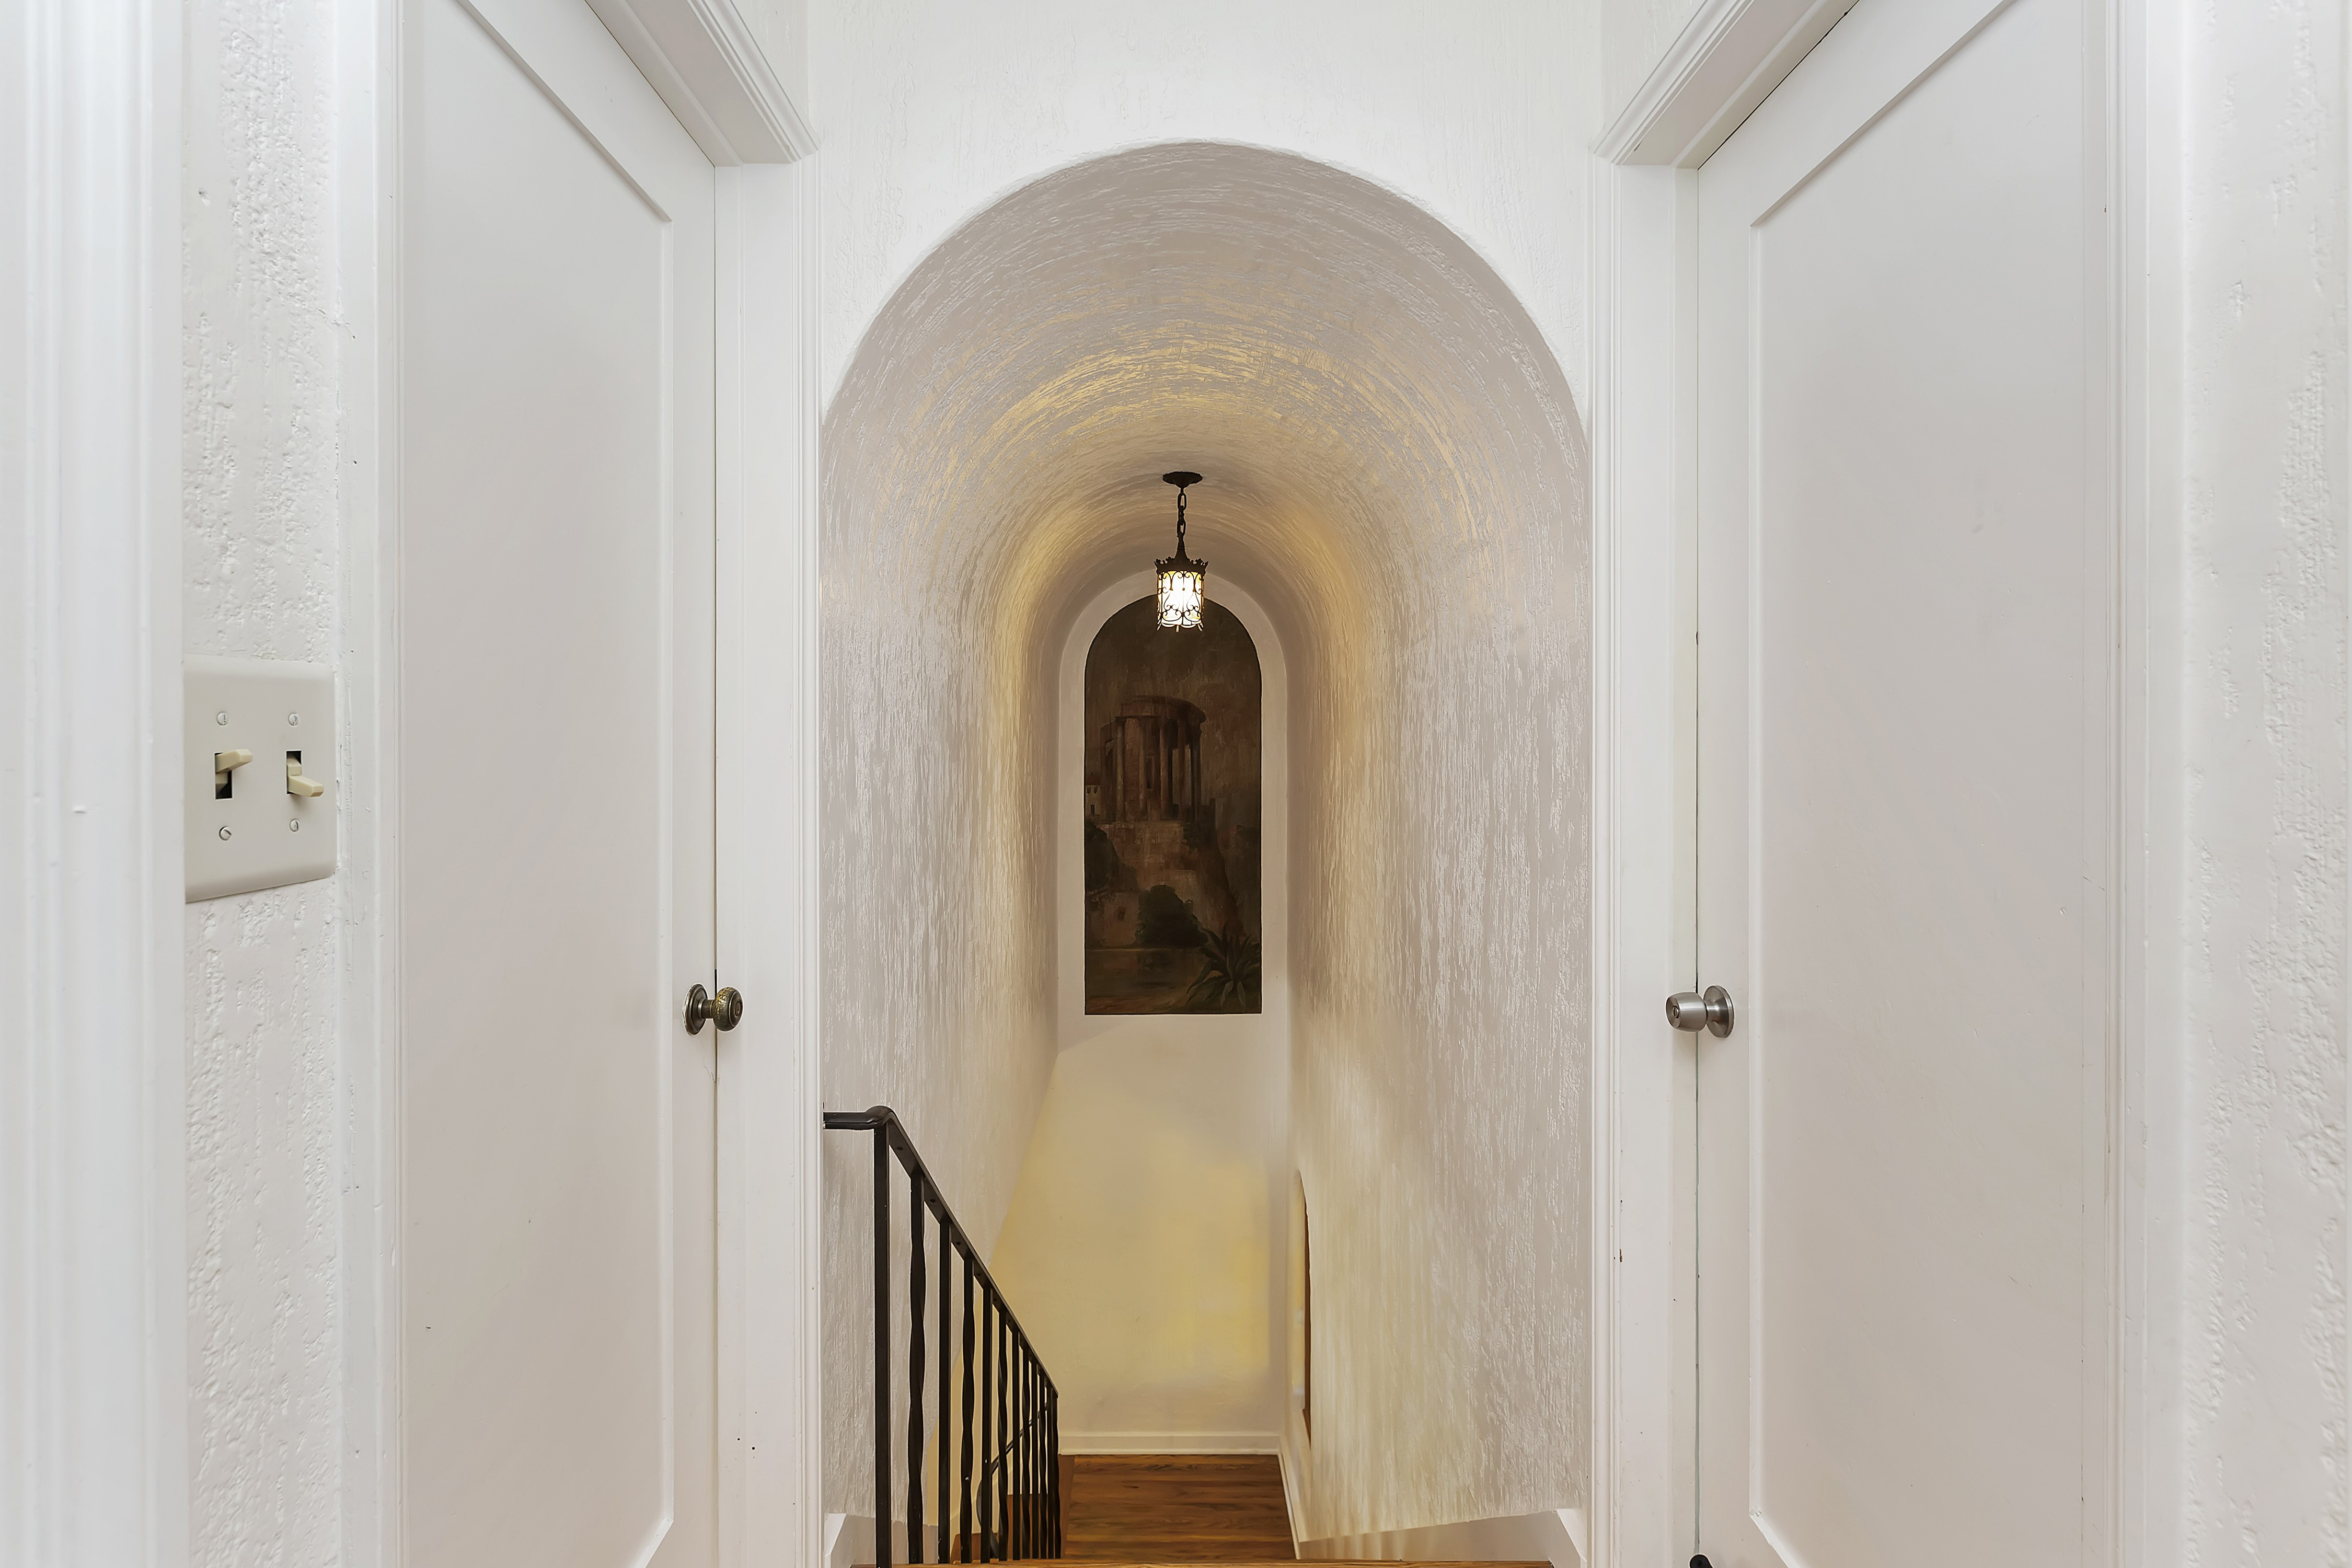 027_Arched Stairway